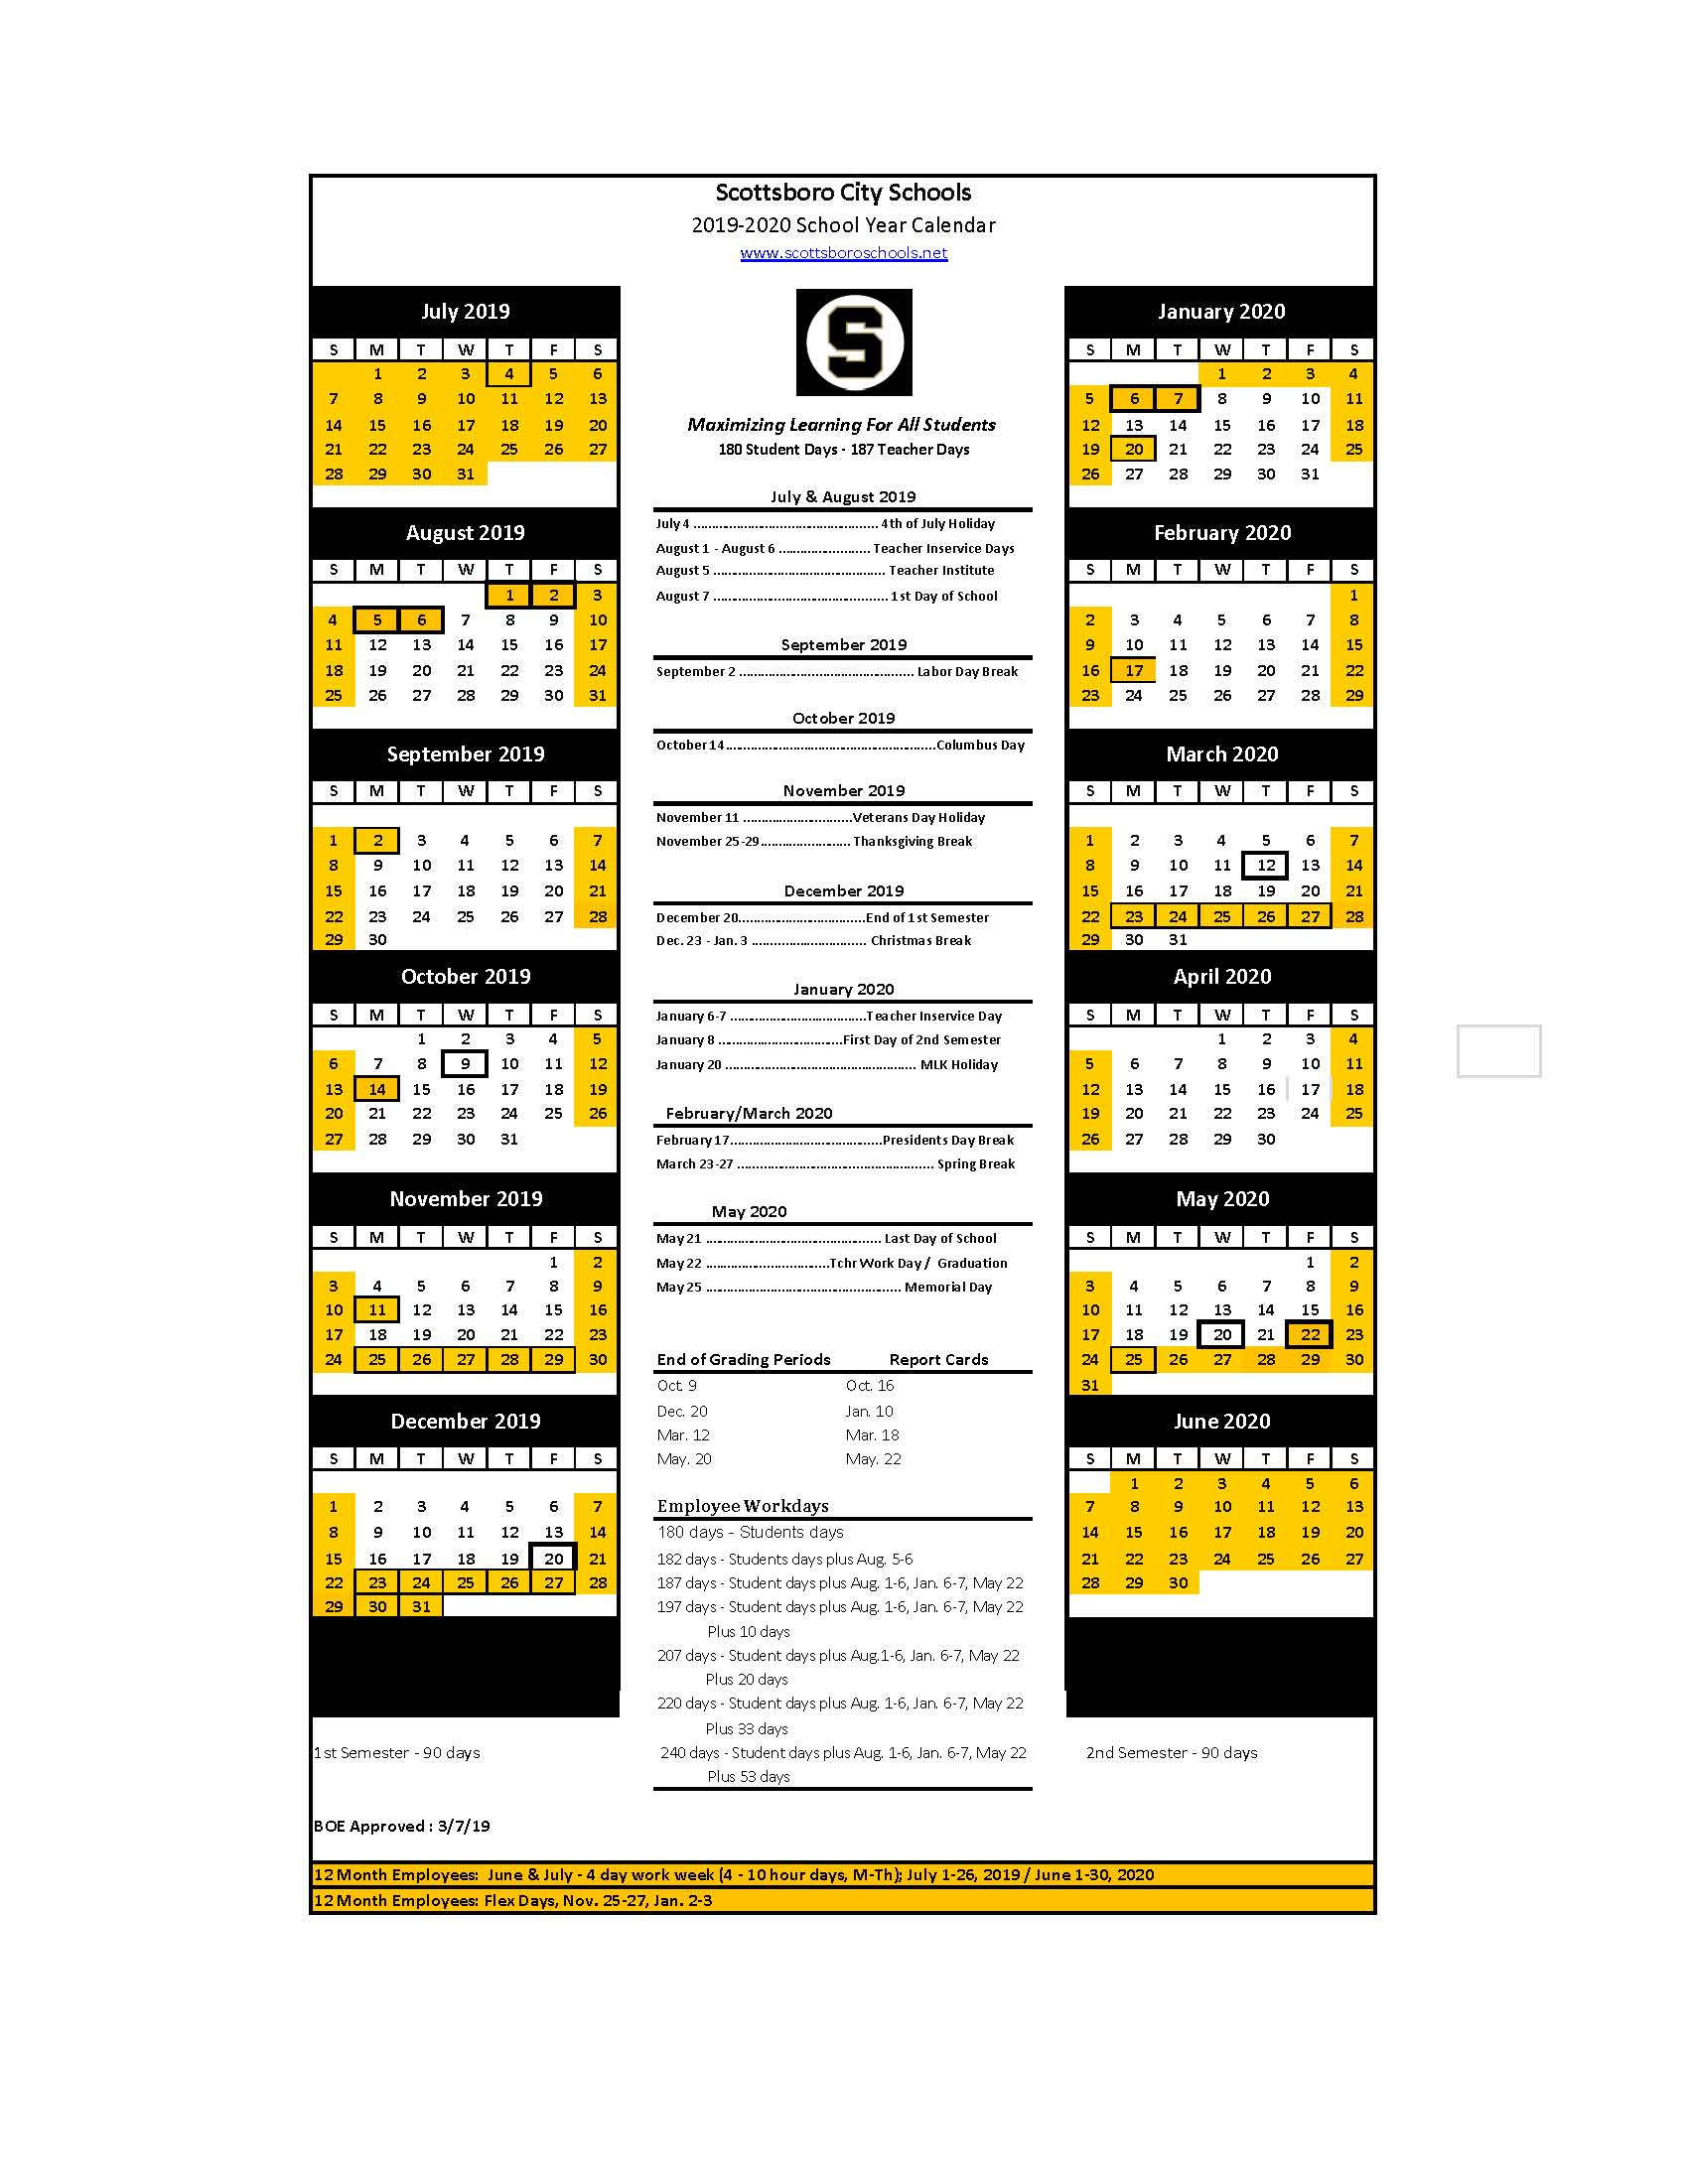 2019-2020 School Year Calendar - Scottsboro City School regarding North Thurston School Calendar 2021